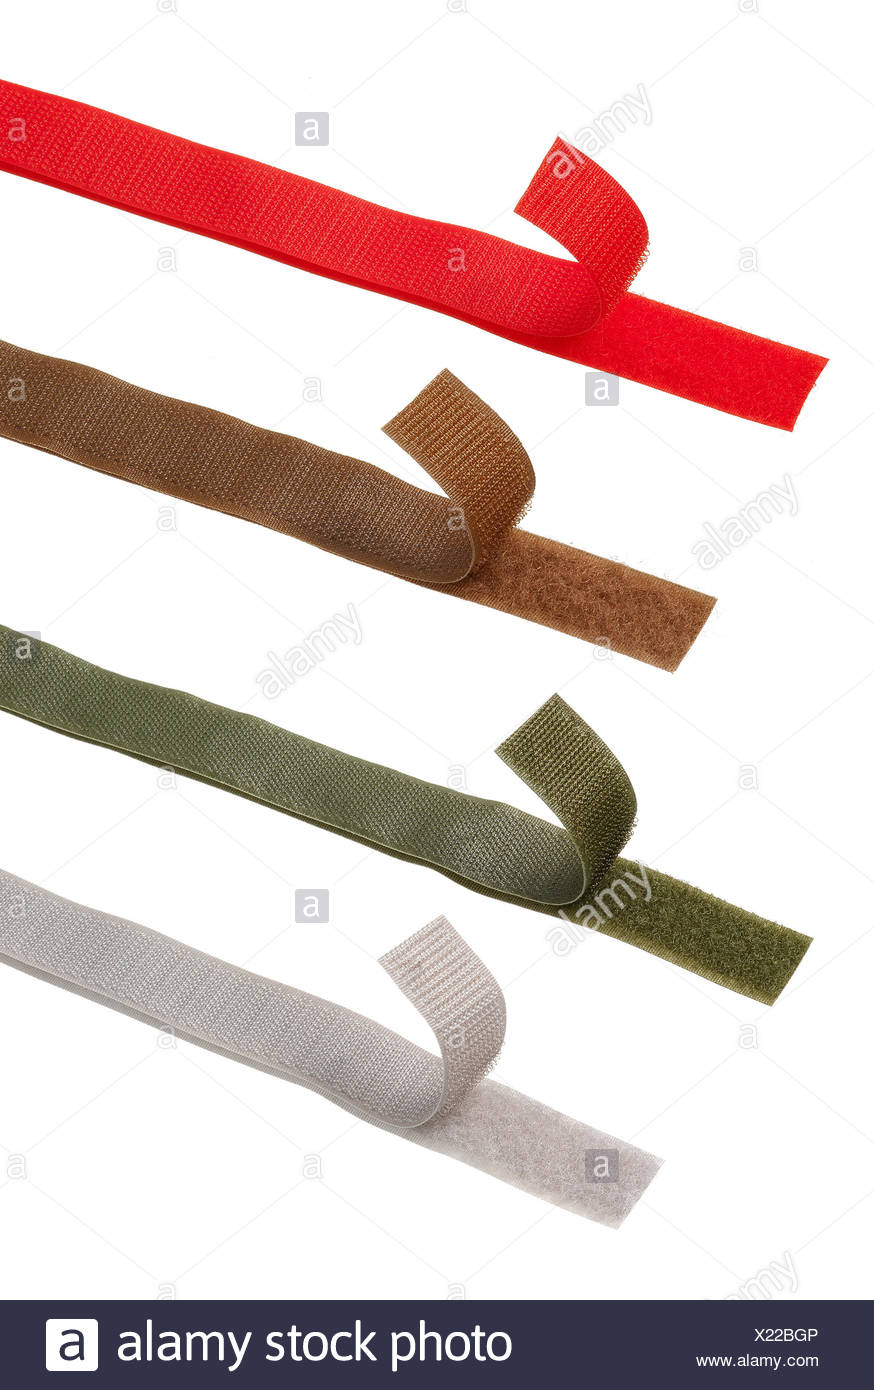 Colorful power grips or Velcro strips against white background - Stock Image